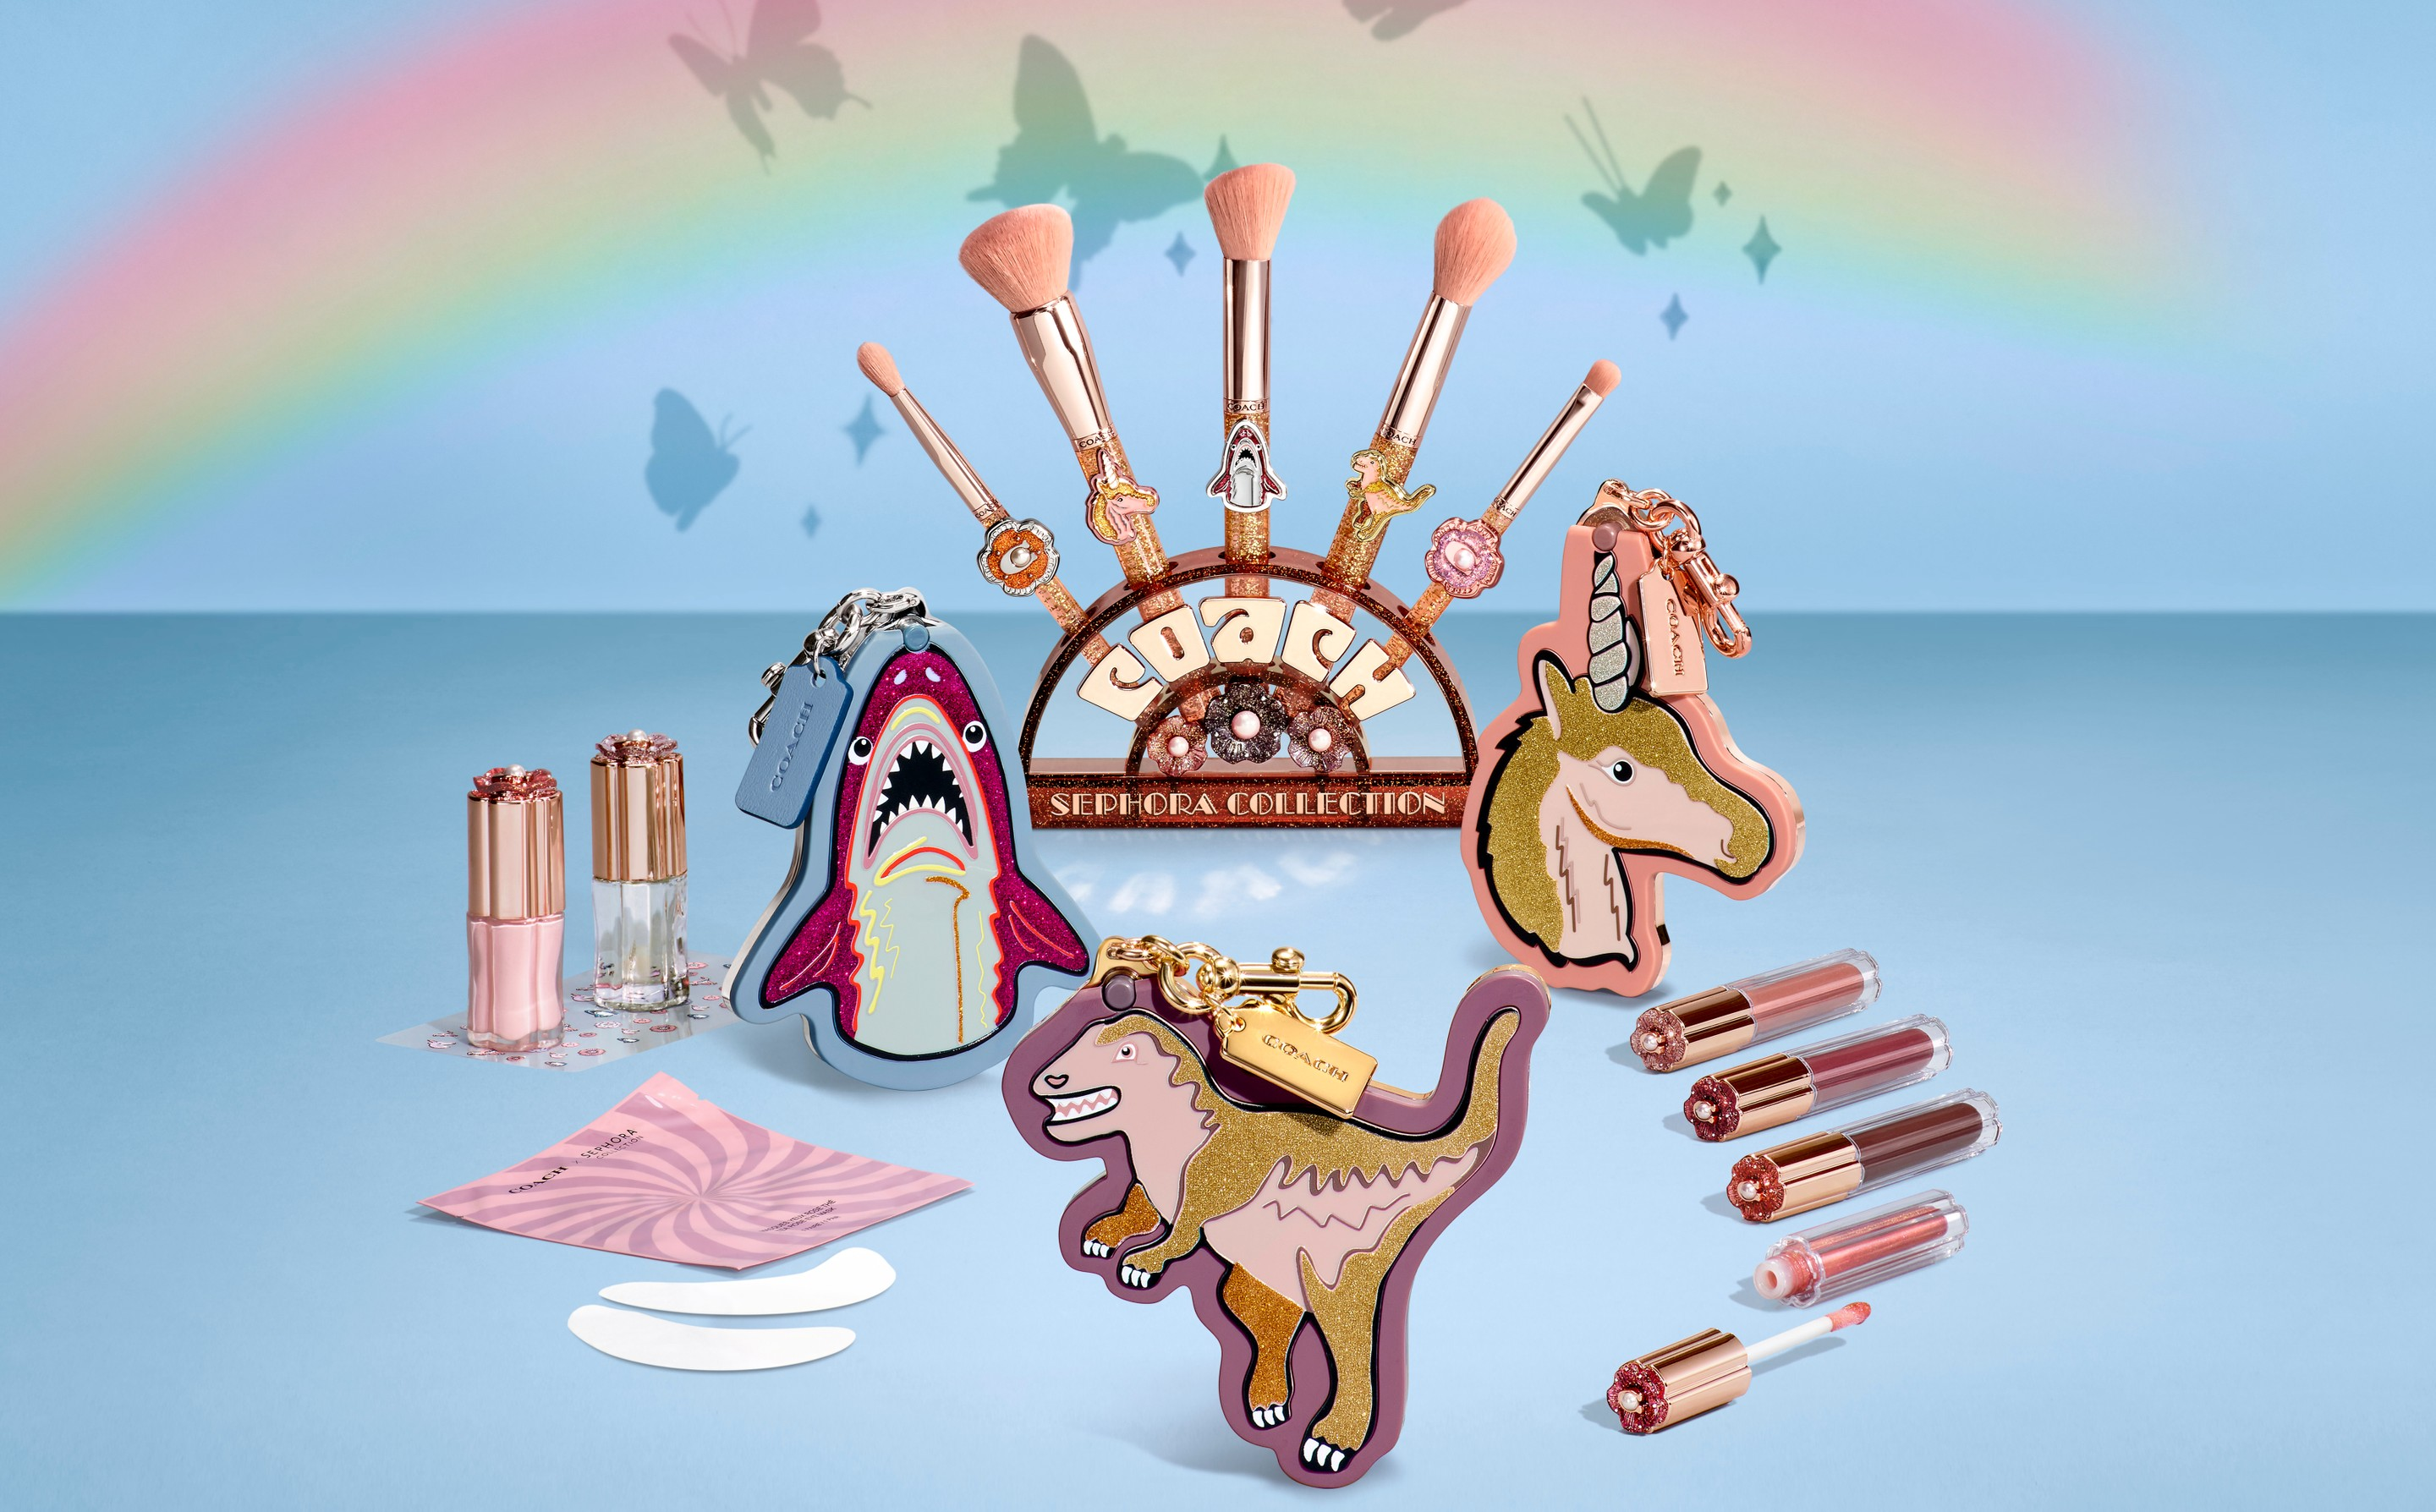 Coach links with Sephora for exclusive makeup collaboration